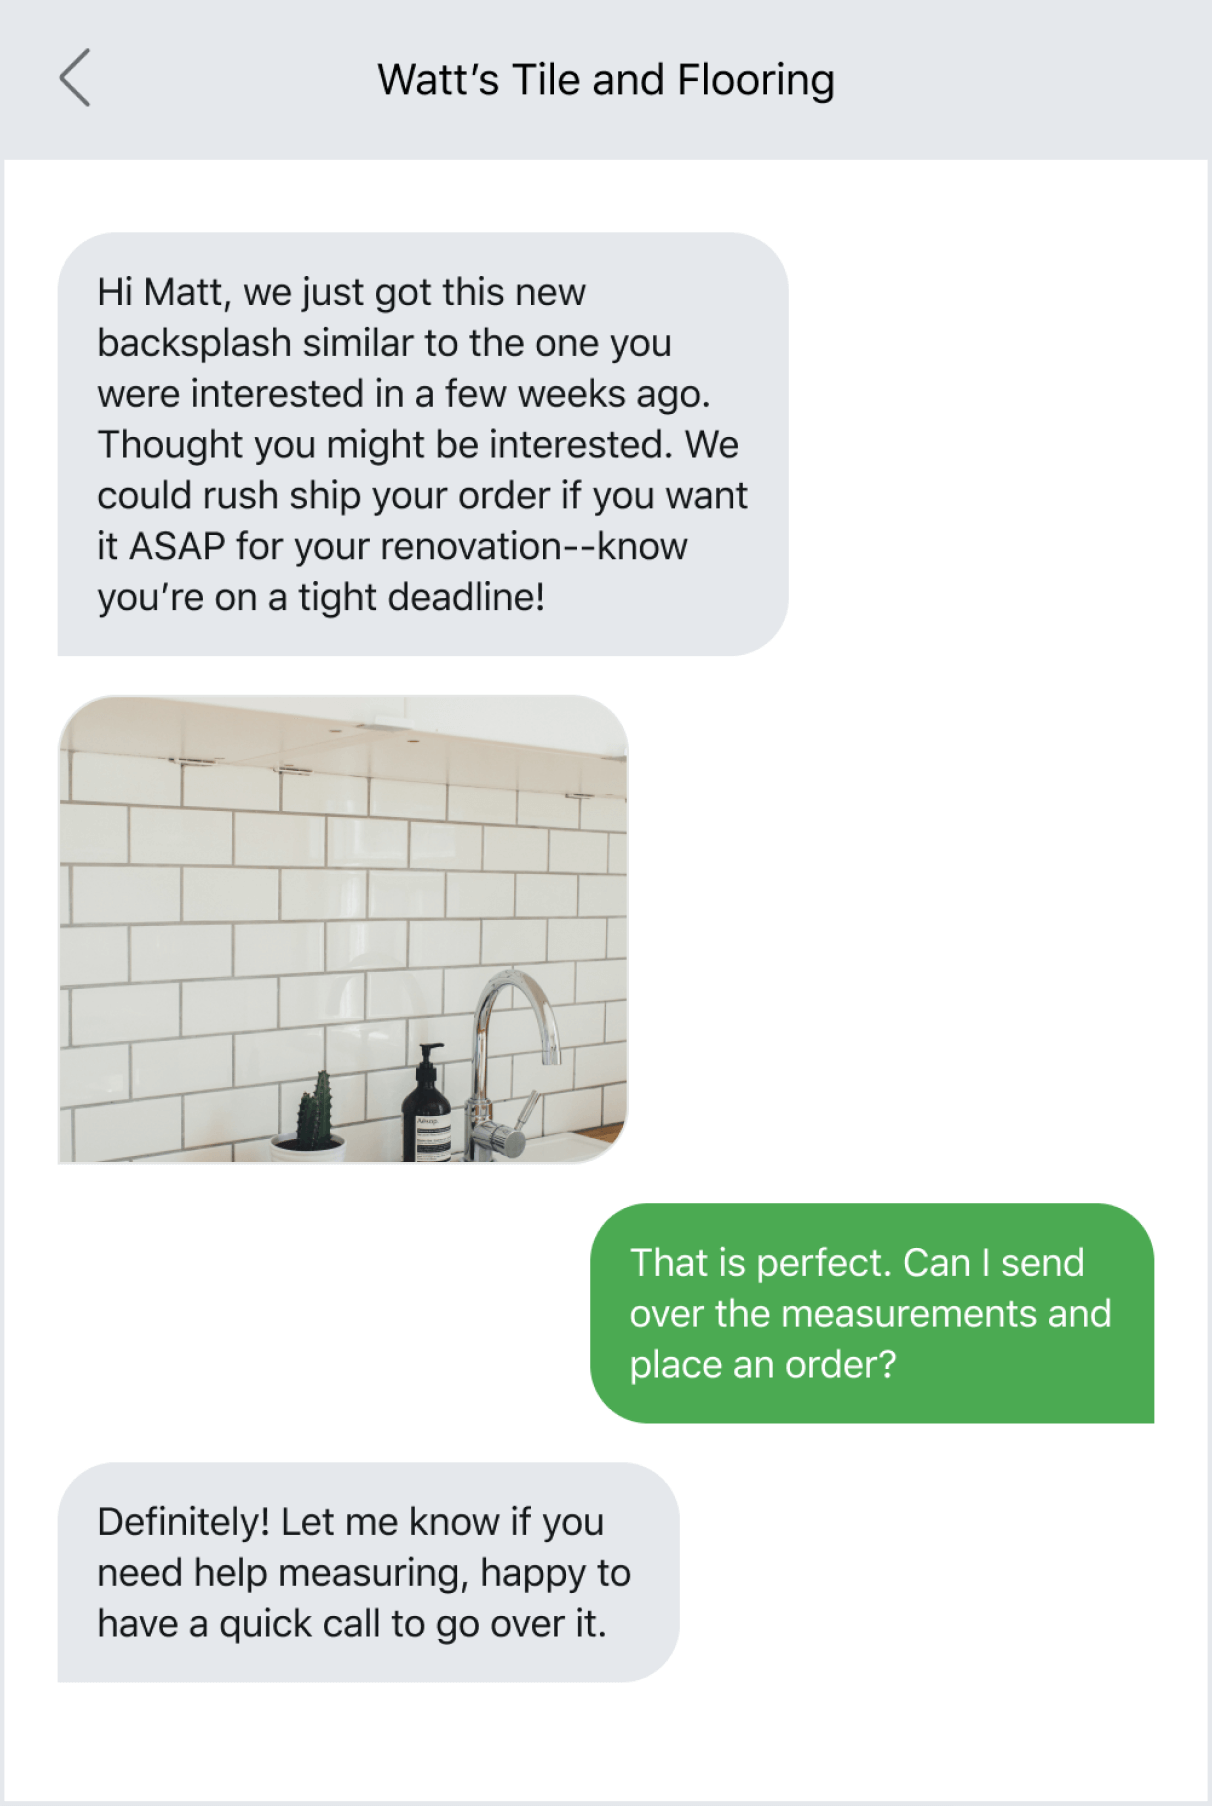 Example of creating a personalized shopping experience via text